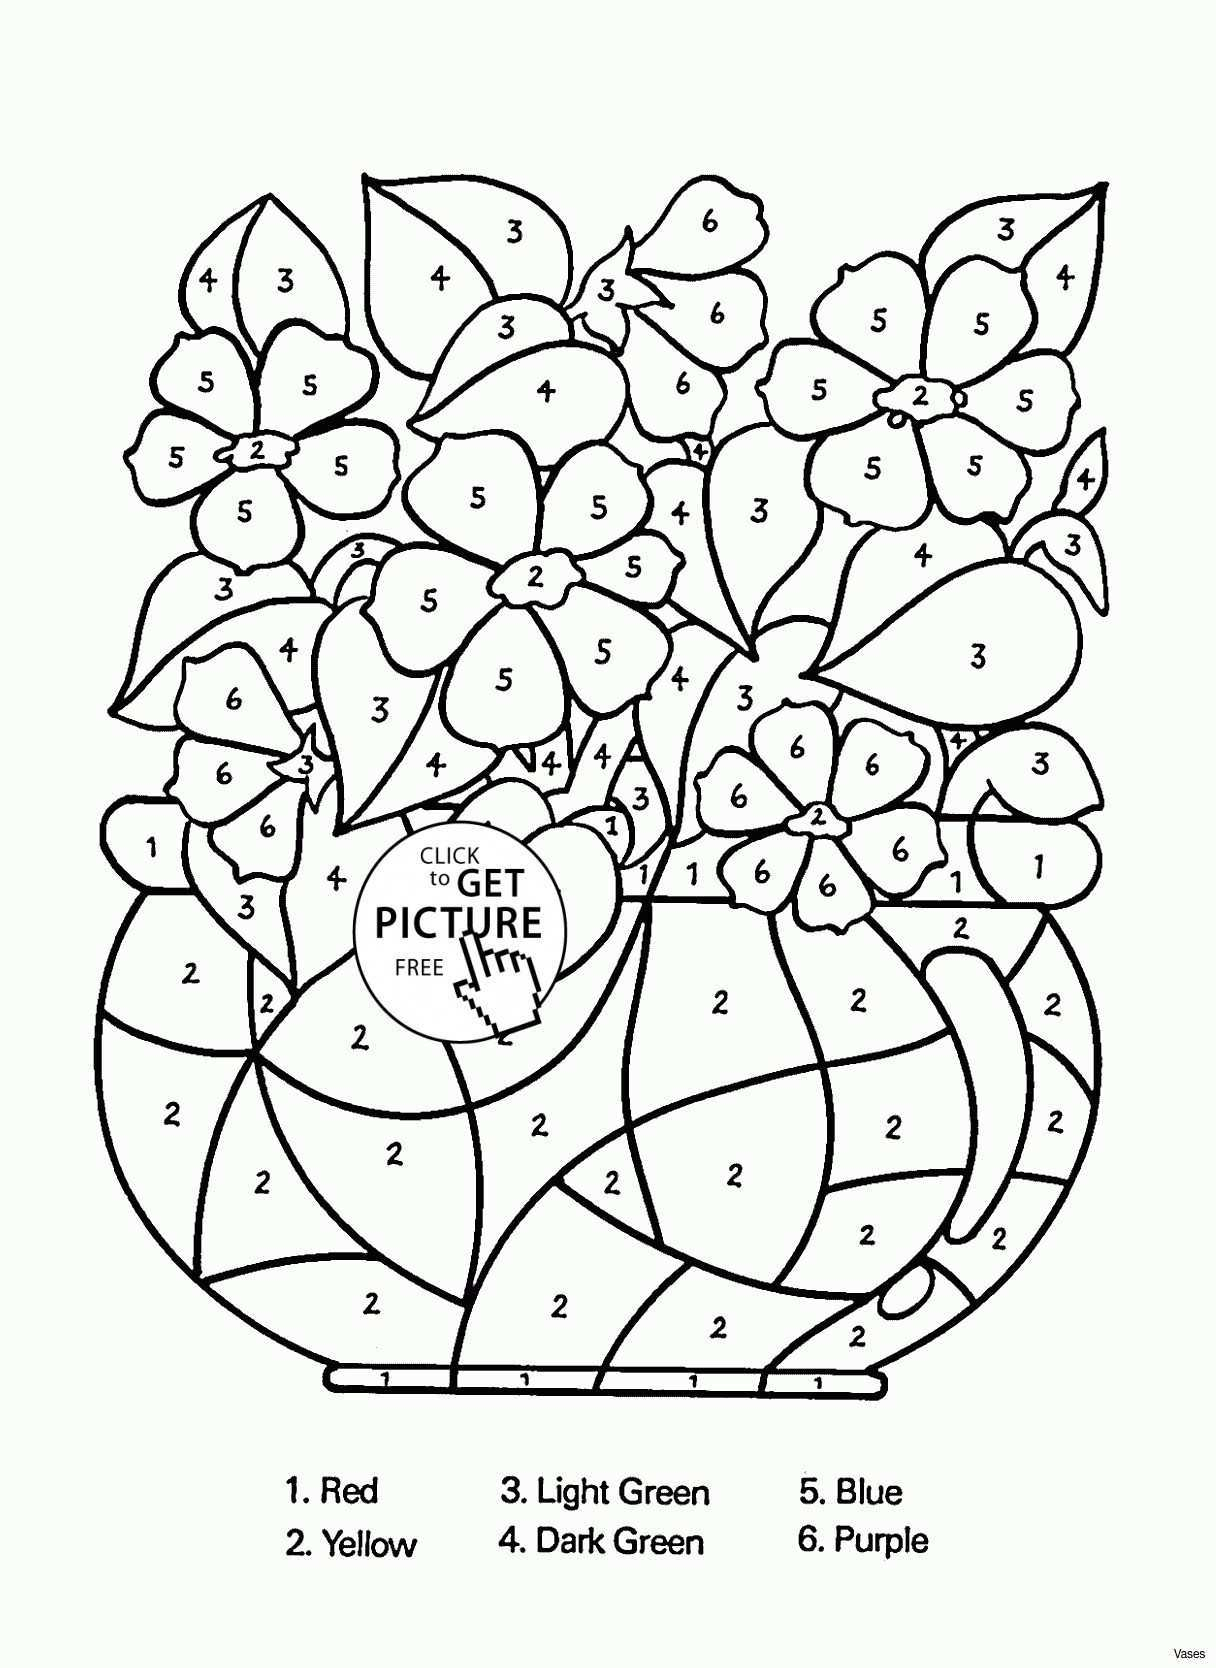 Turn Pictures Into Coloring Pages App Turn Picture Into Coloring ...